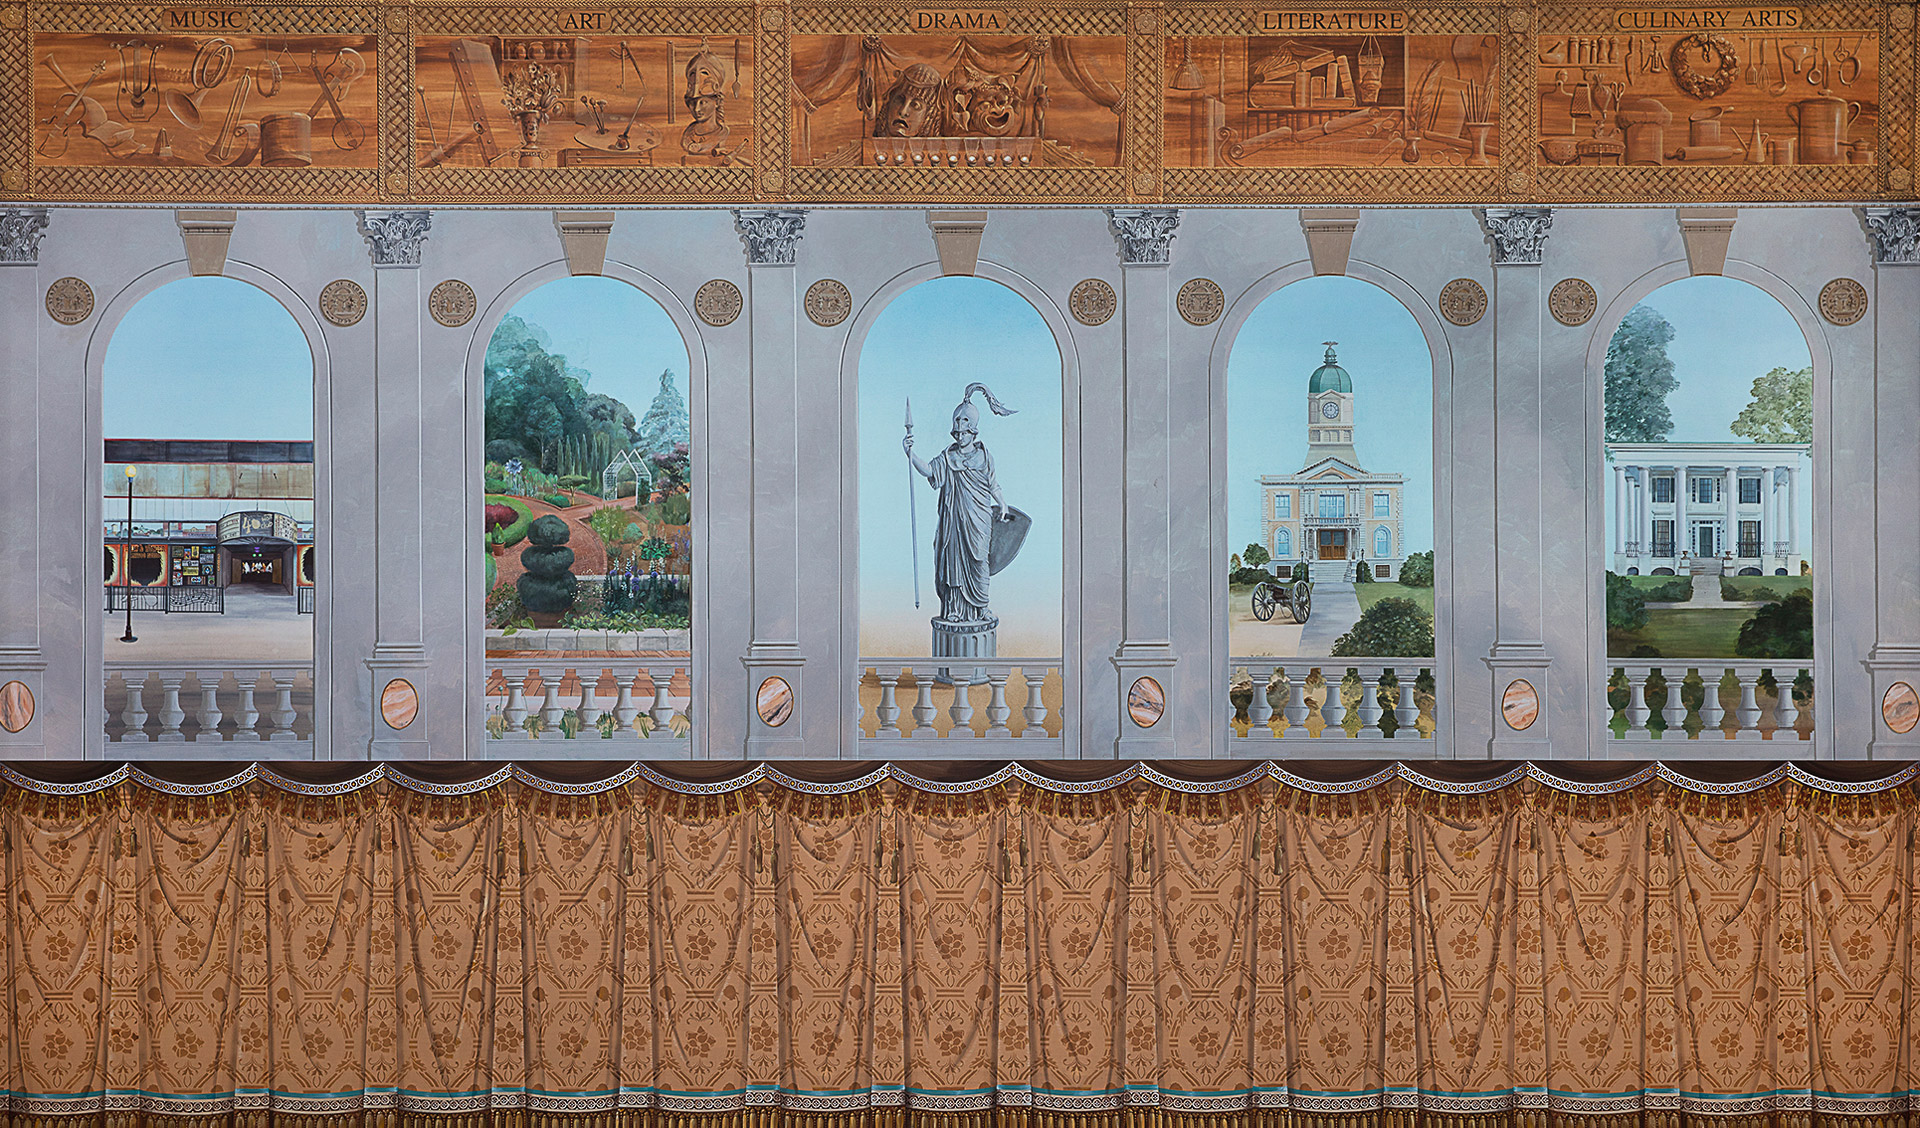 mural depicting images of vignettes of Athens, Georgia